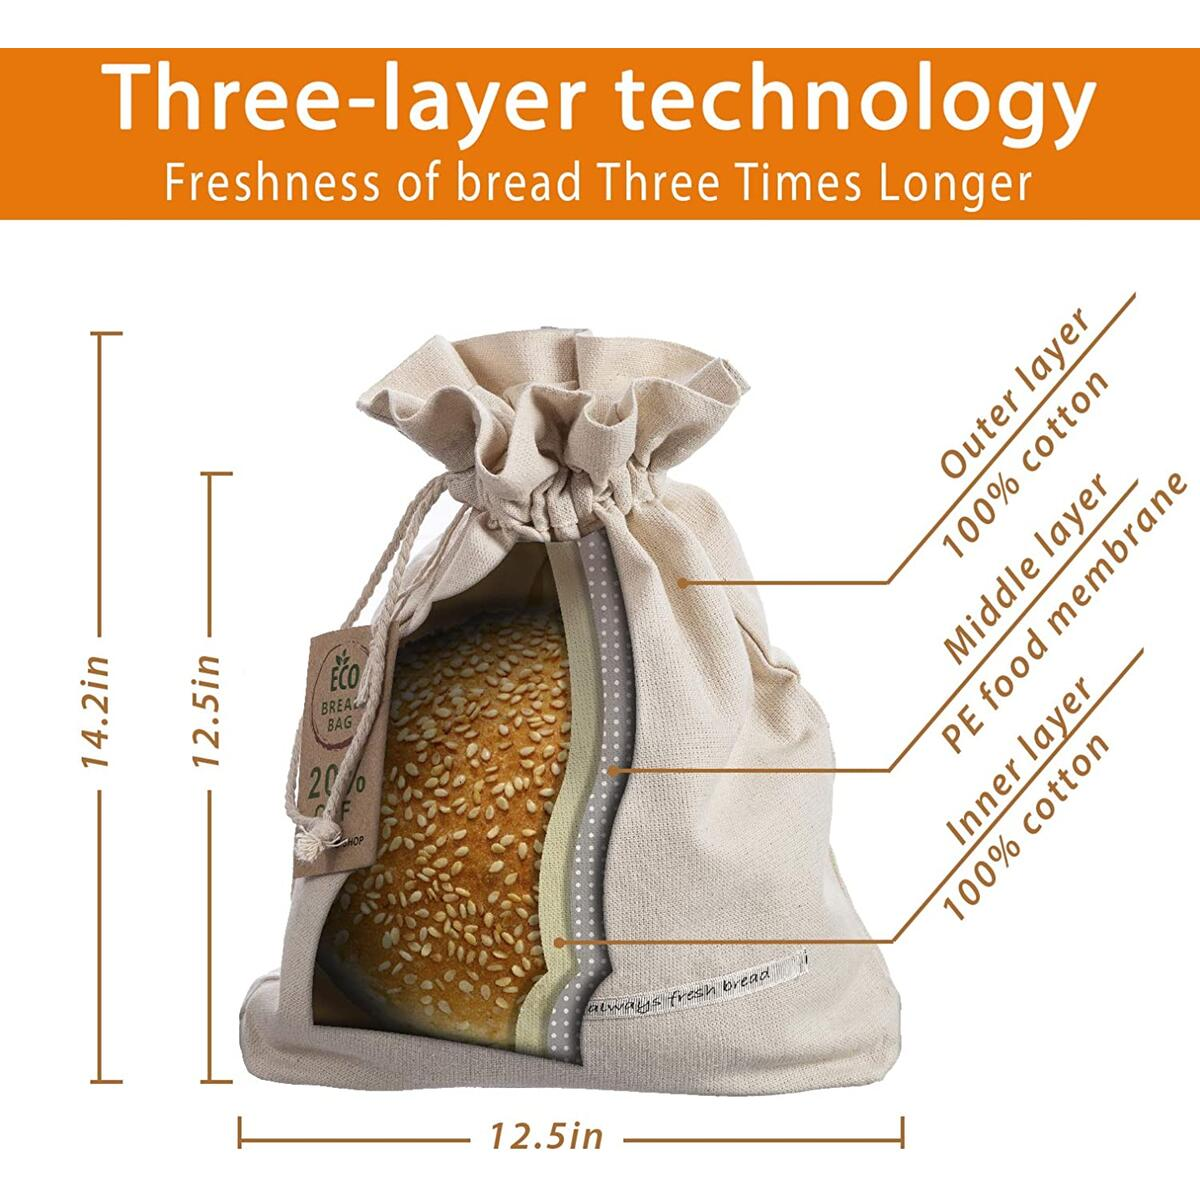 Goodleks Patented Cotton Bread Bag, Reusable Bread Bags for Homemade Bread Loaf, Natural Organic Canvas Bread Storage Bags